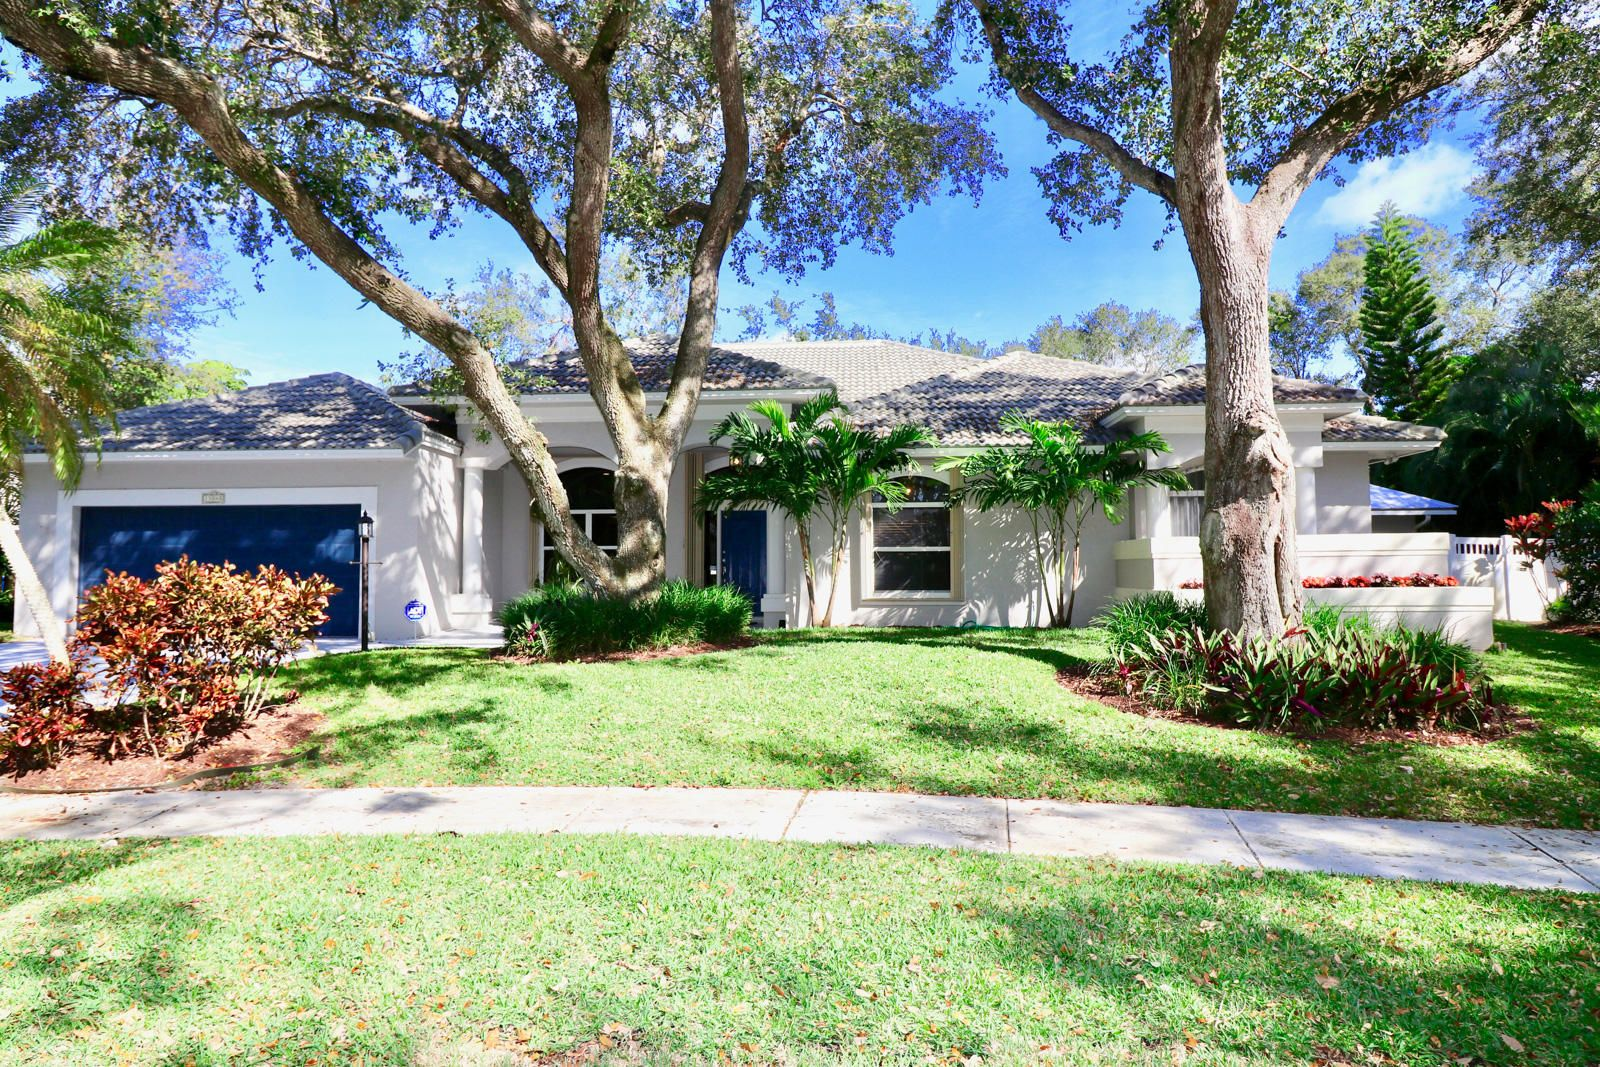 FOR SALE 4BED/3.5BATH POOL HOME WITH GUEST HOUSE 13048 Coastal ...